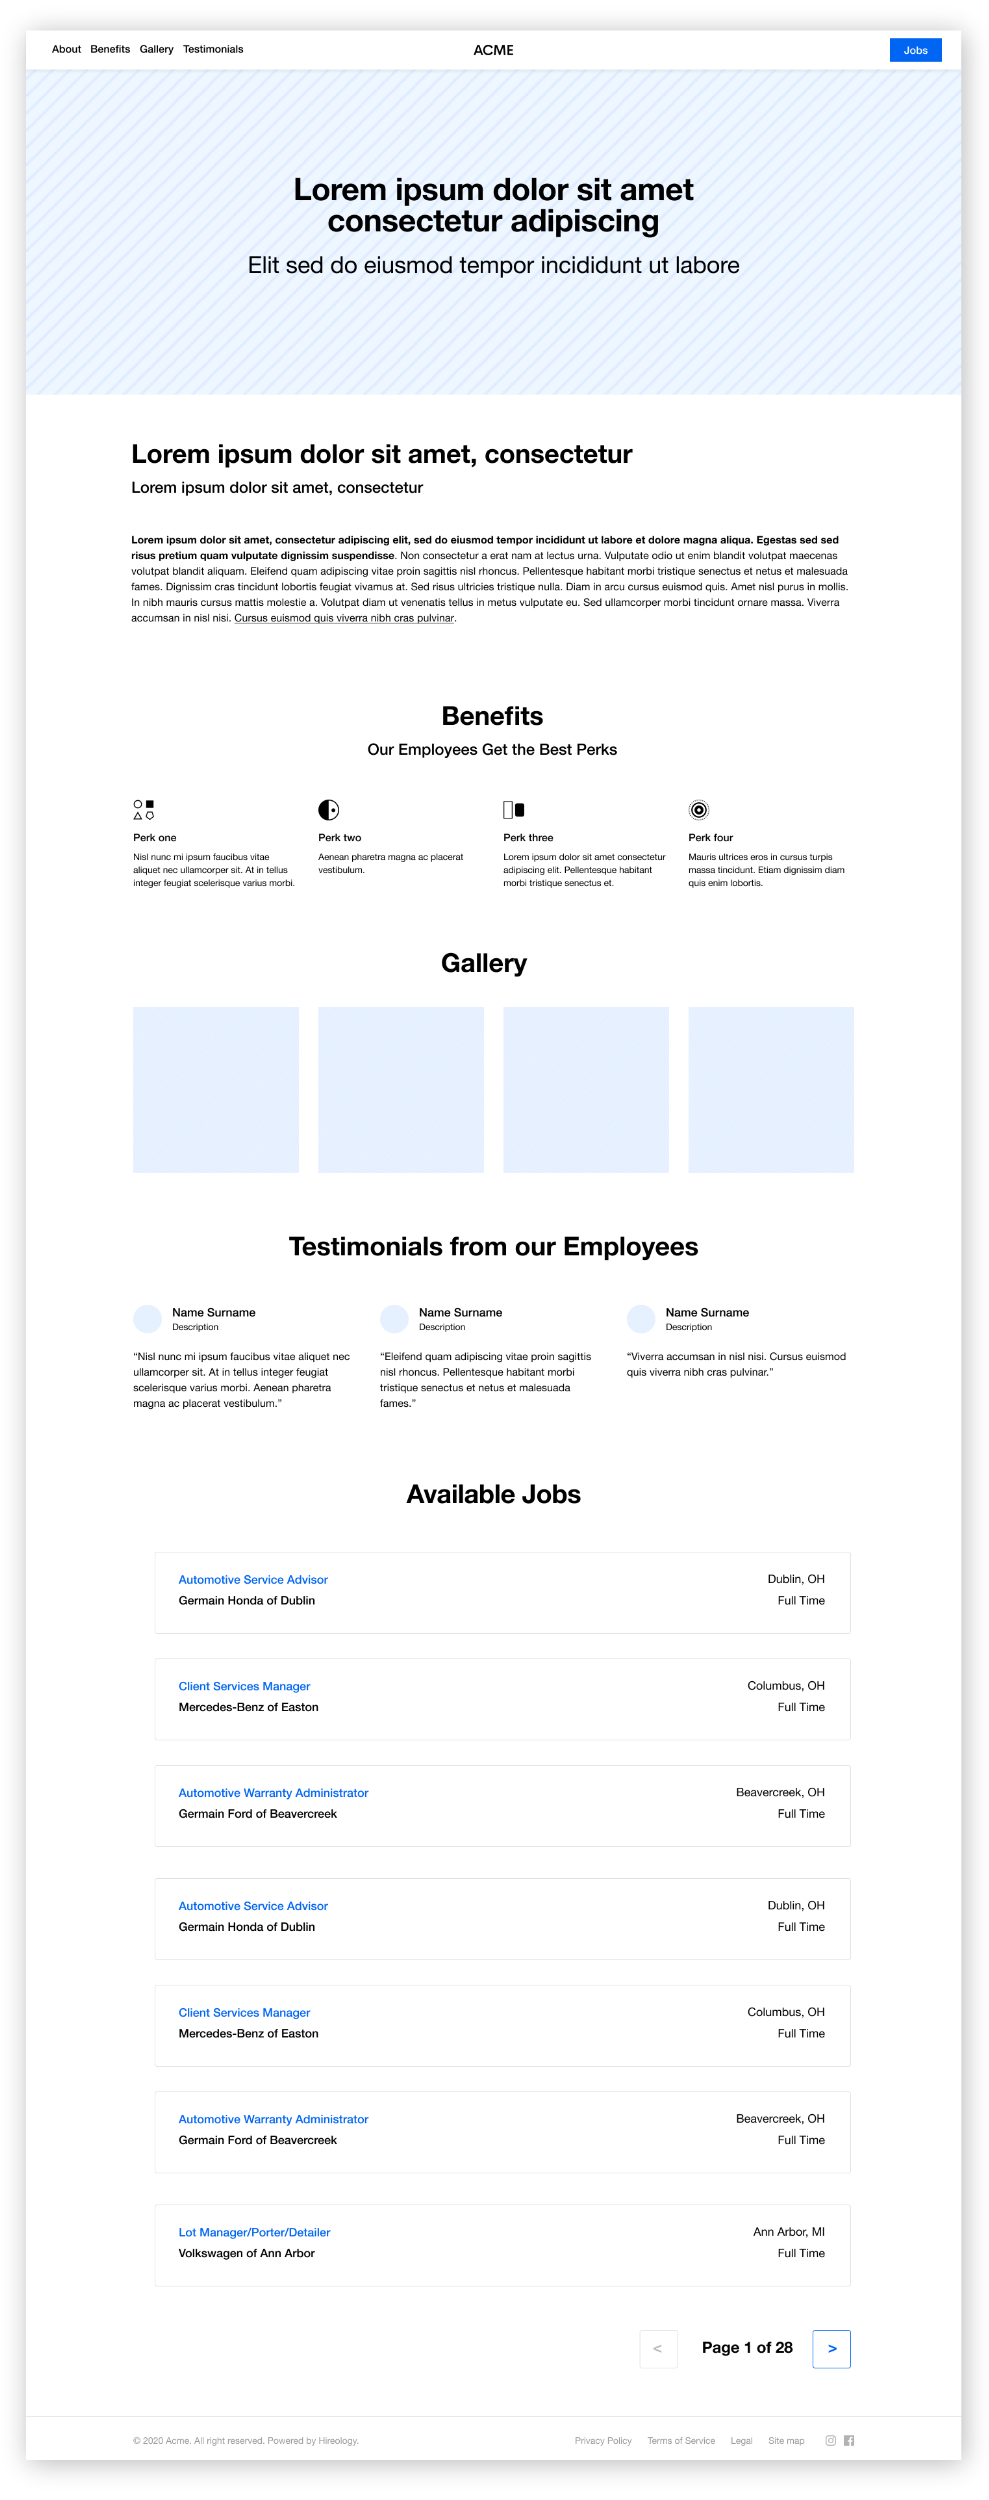 A wireframe example of a full page desktop career site built out of blocks